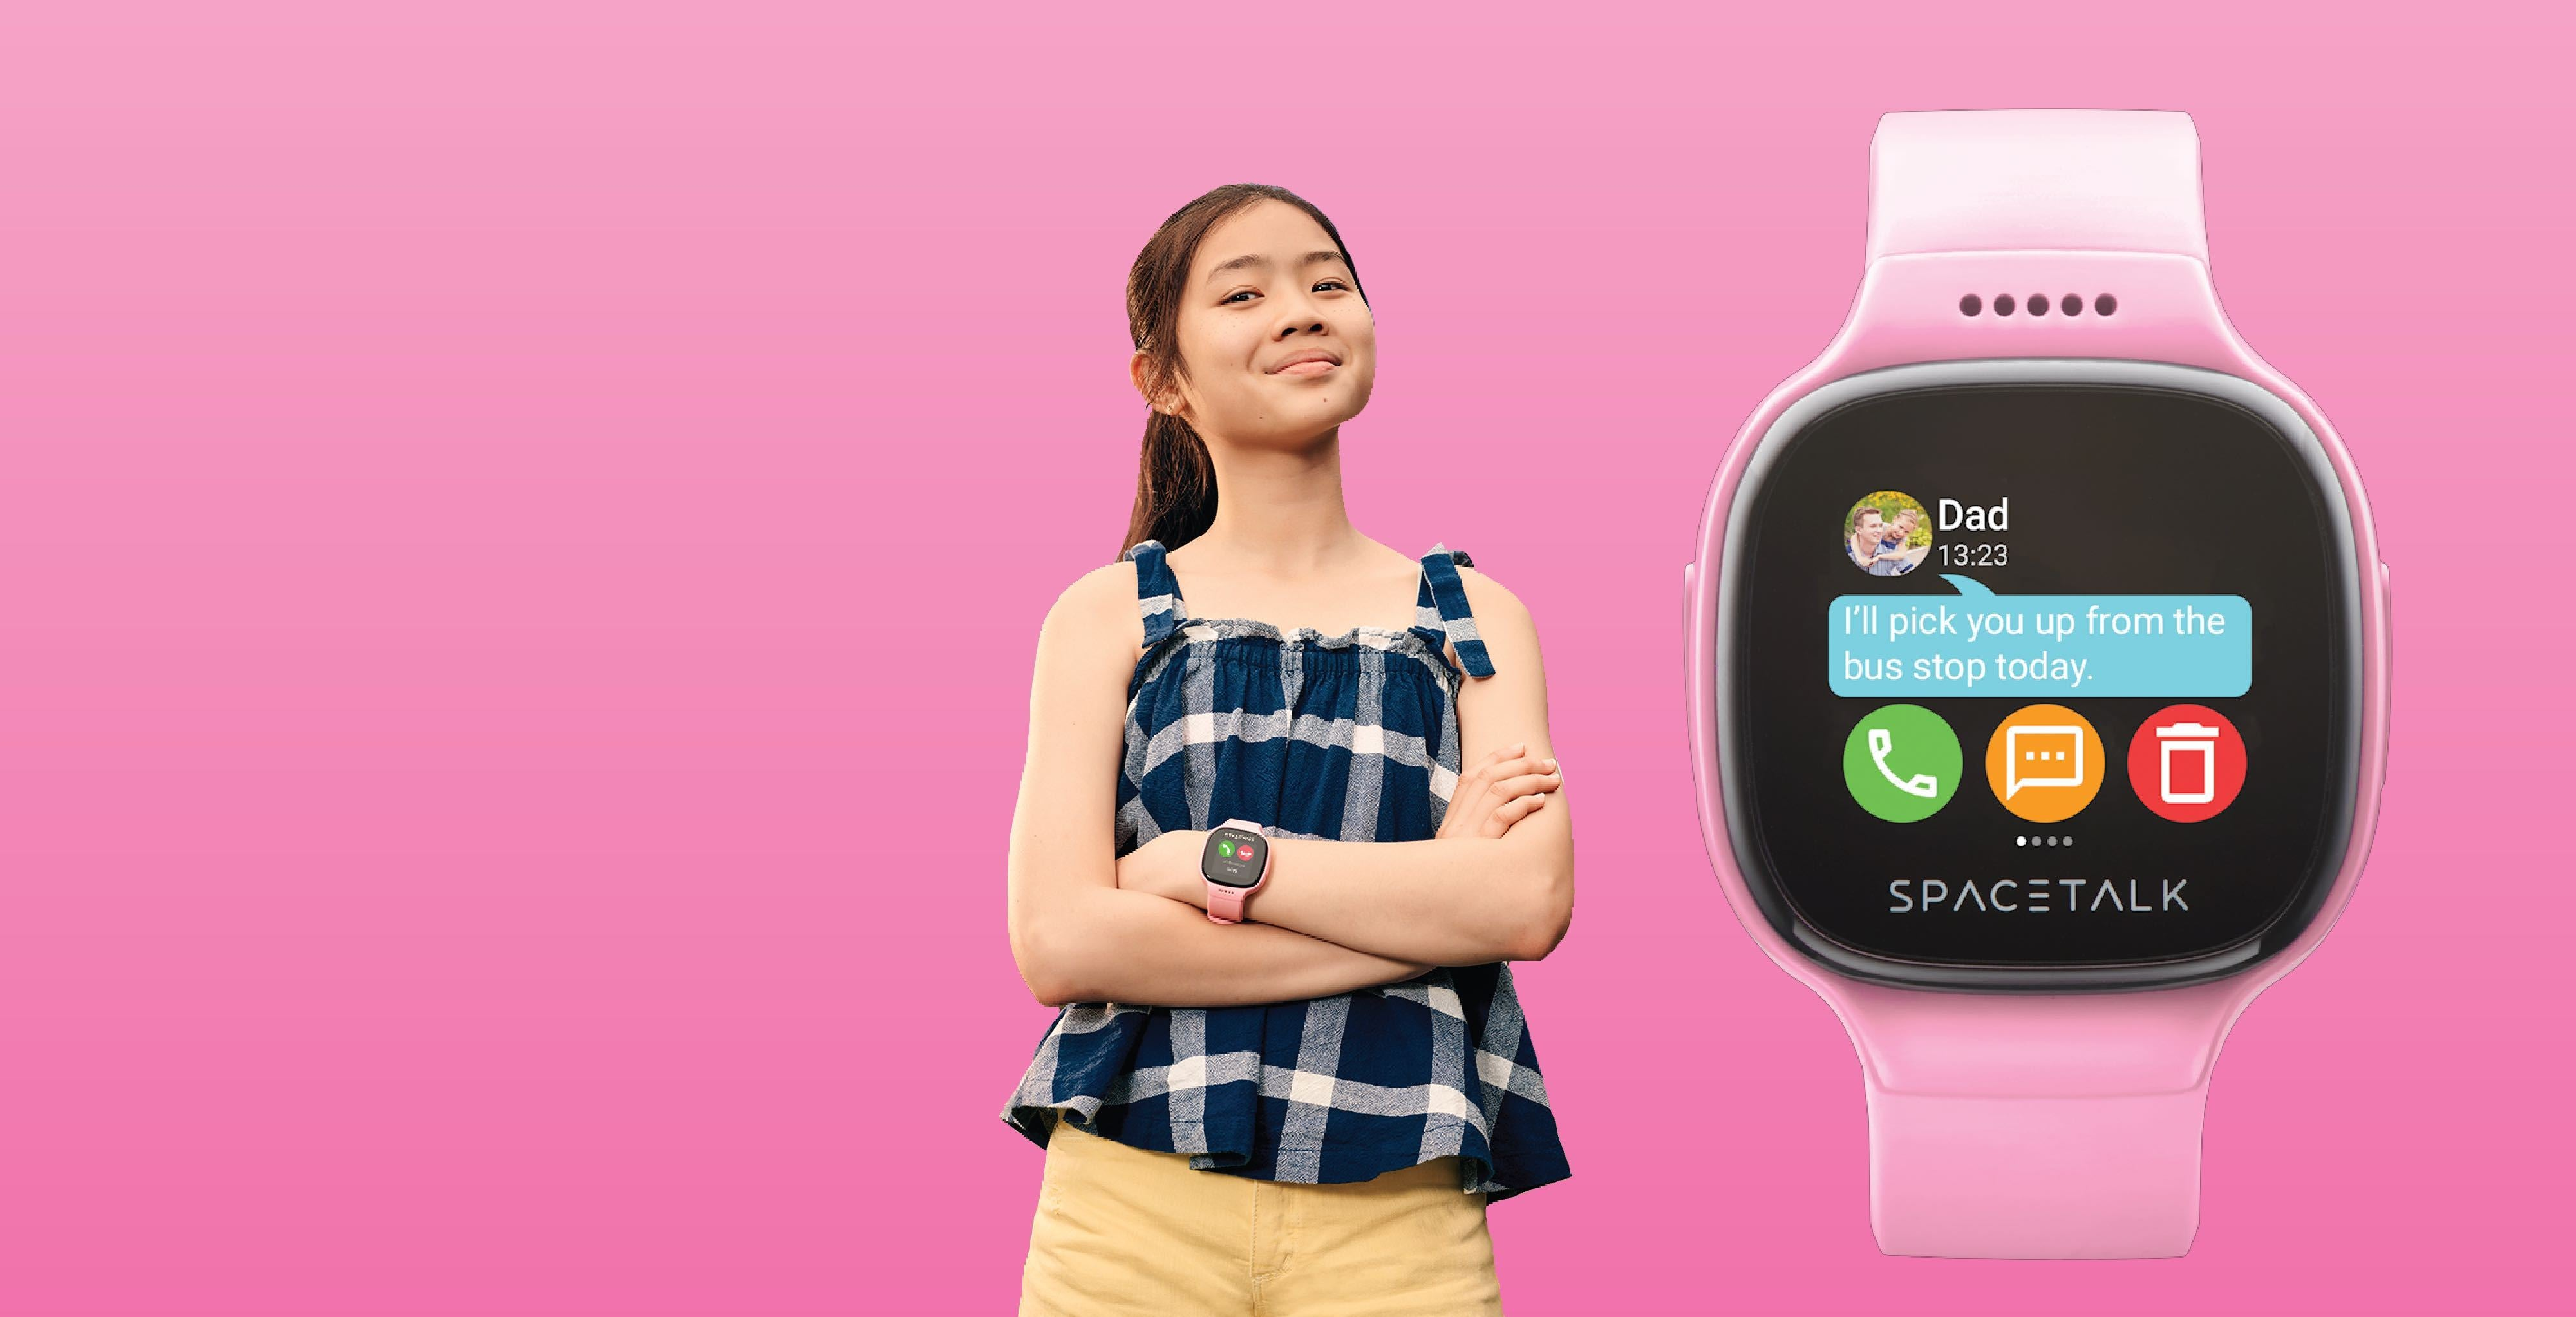 SPACETALK - Smart Phone, Watch & GPS - Simply Safe Phones for Kids